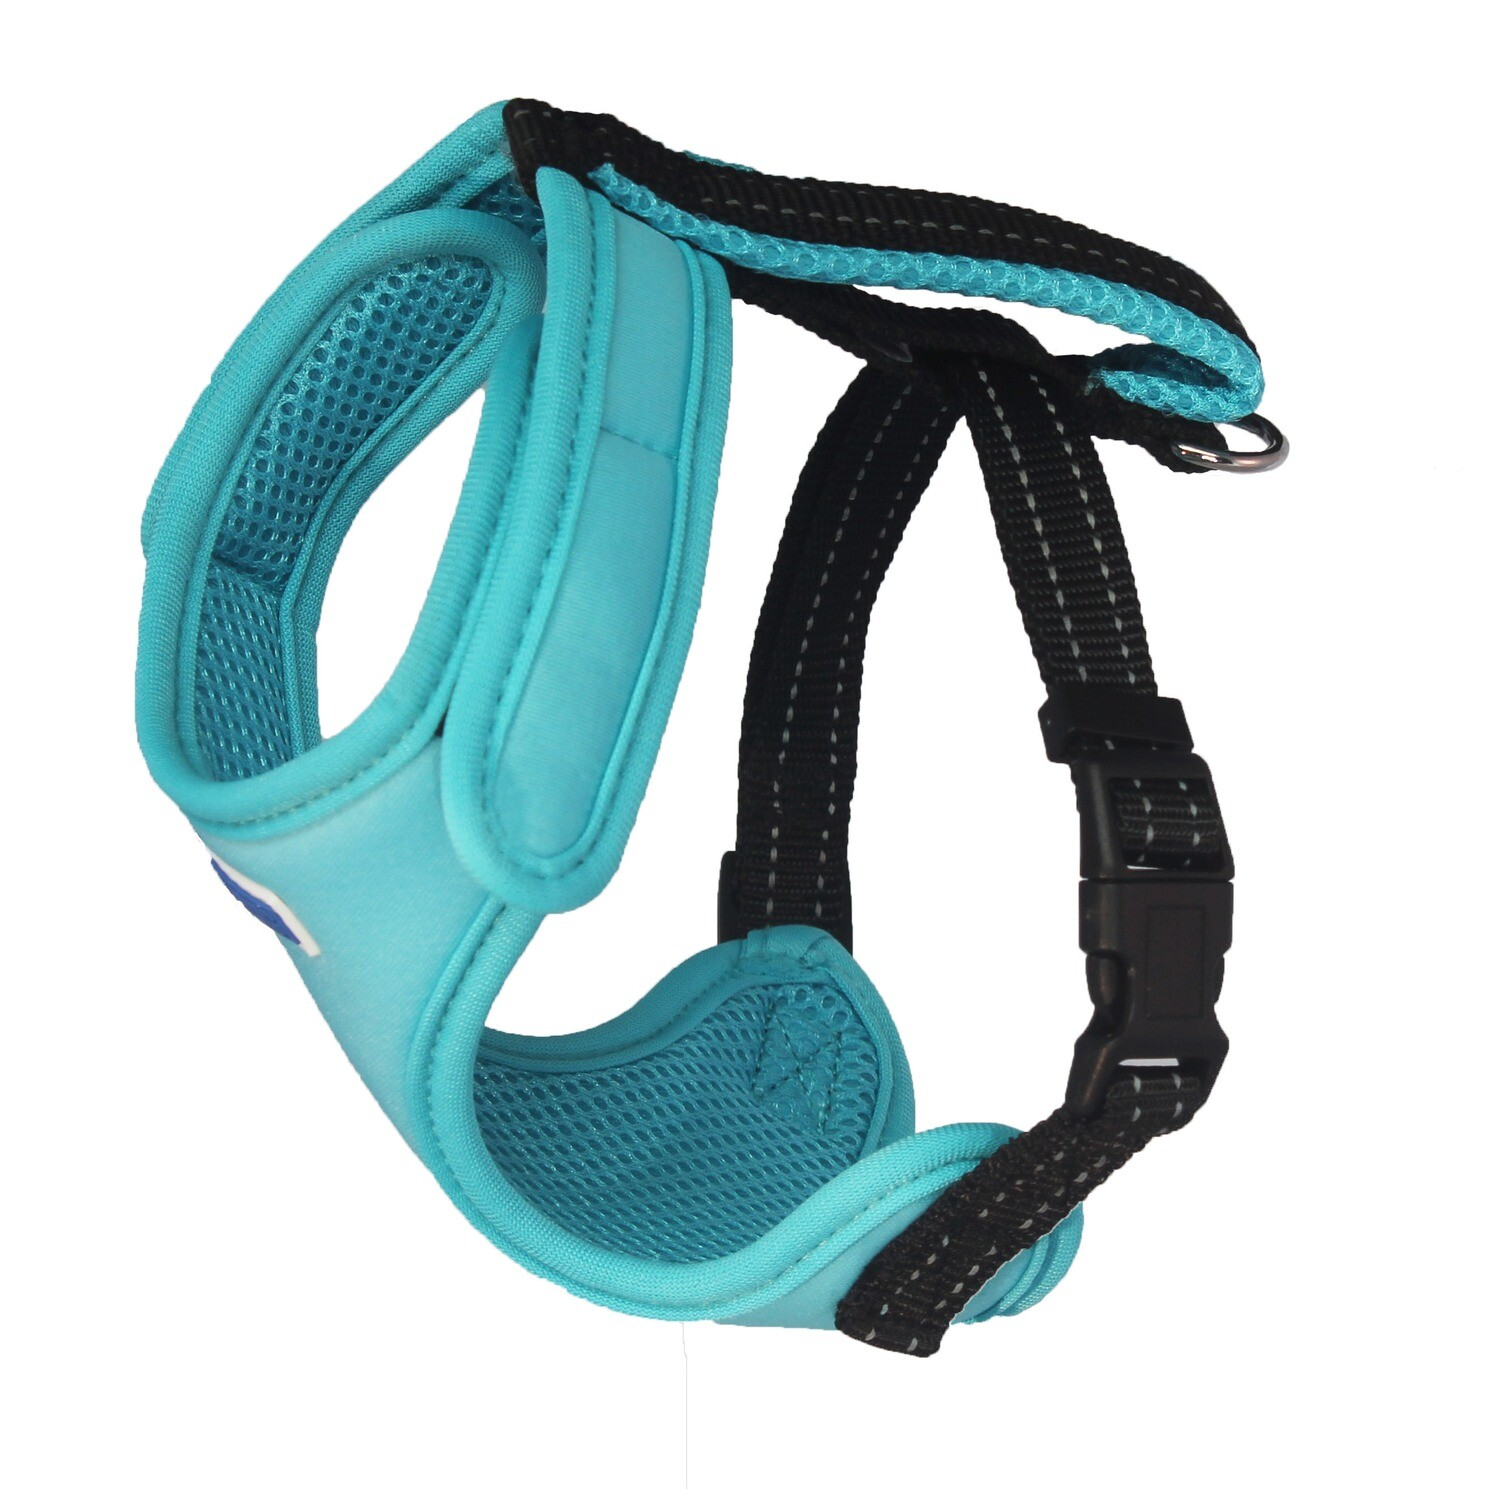 BAYDOG Cape Cod Harness Teal Med